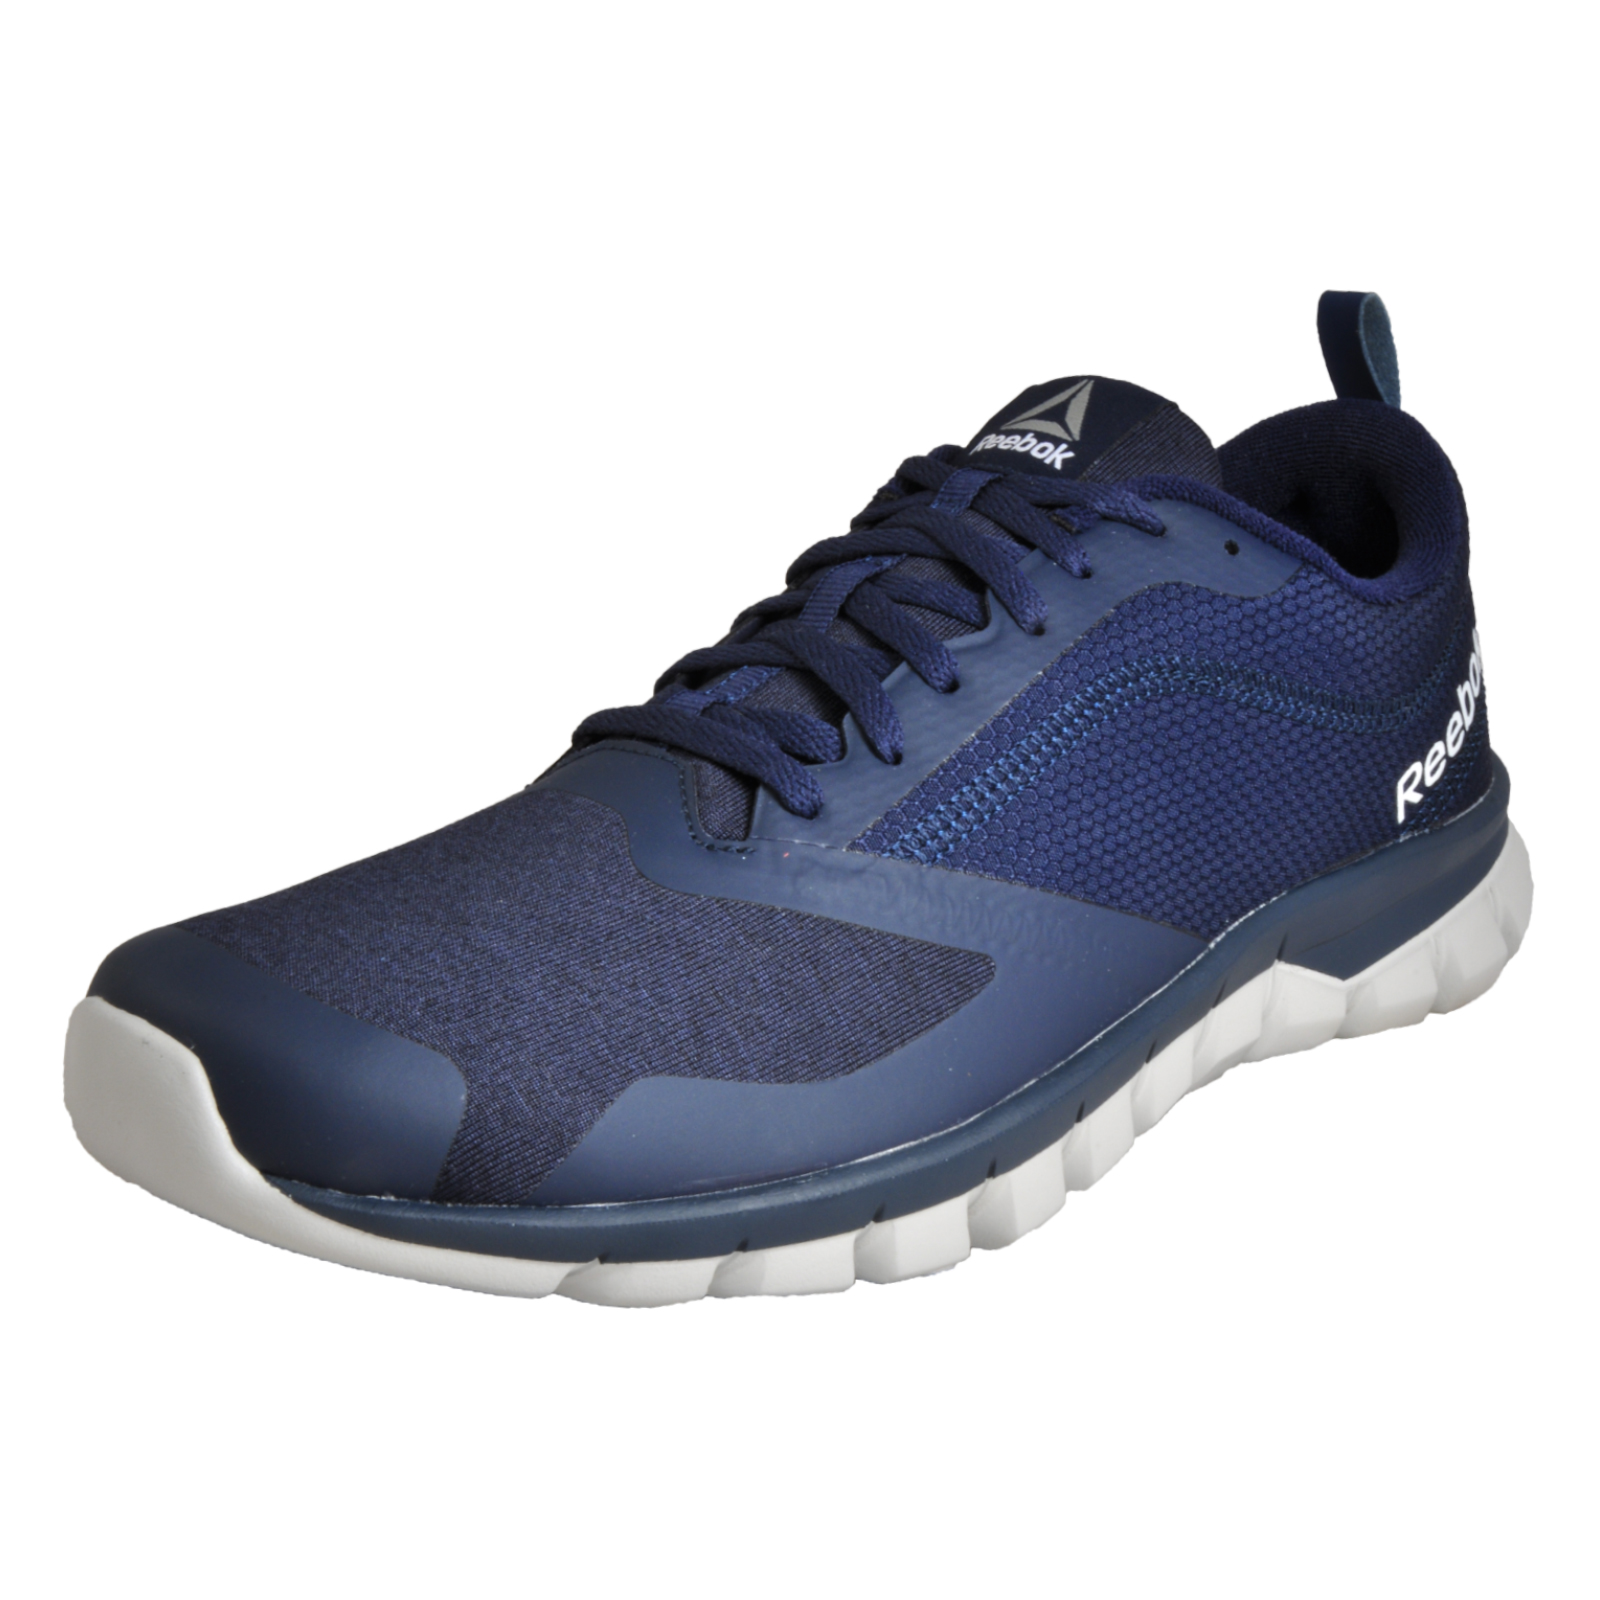 0cad6571c94 Details about Reebok Sublite Authentic 4.0 Mens Running Shoes Fitness Gym  Trainers Navy